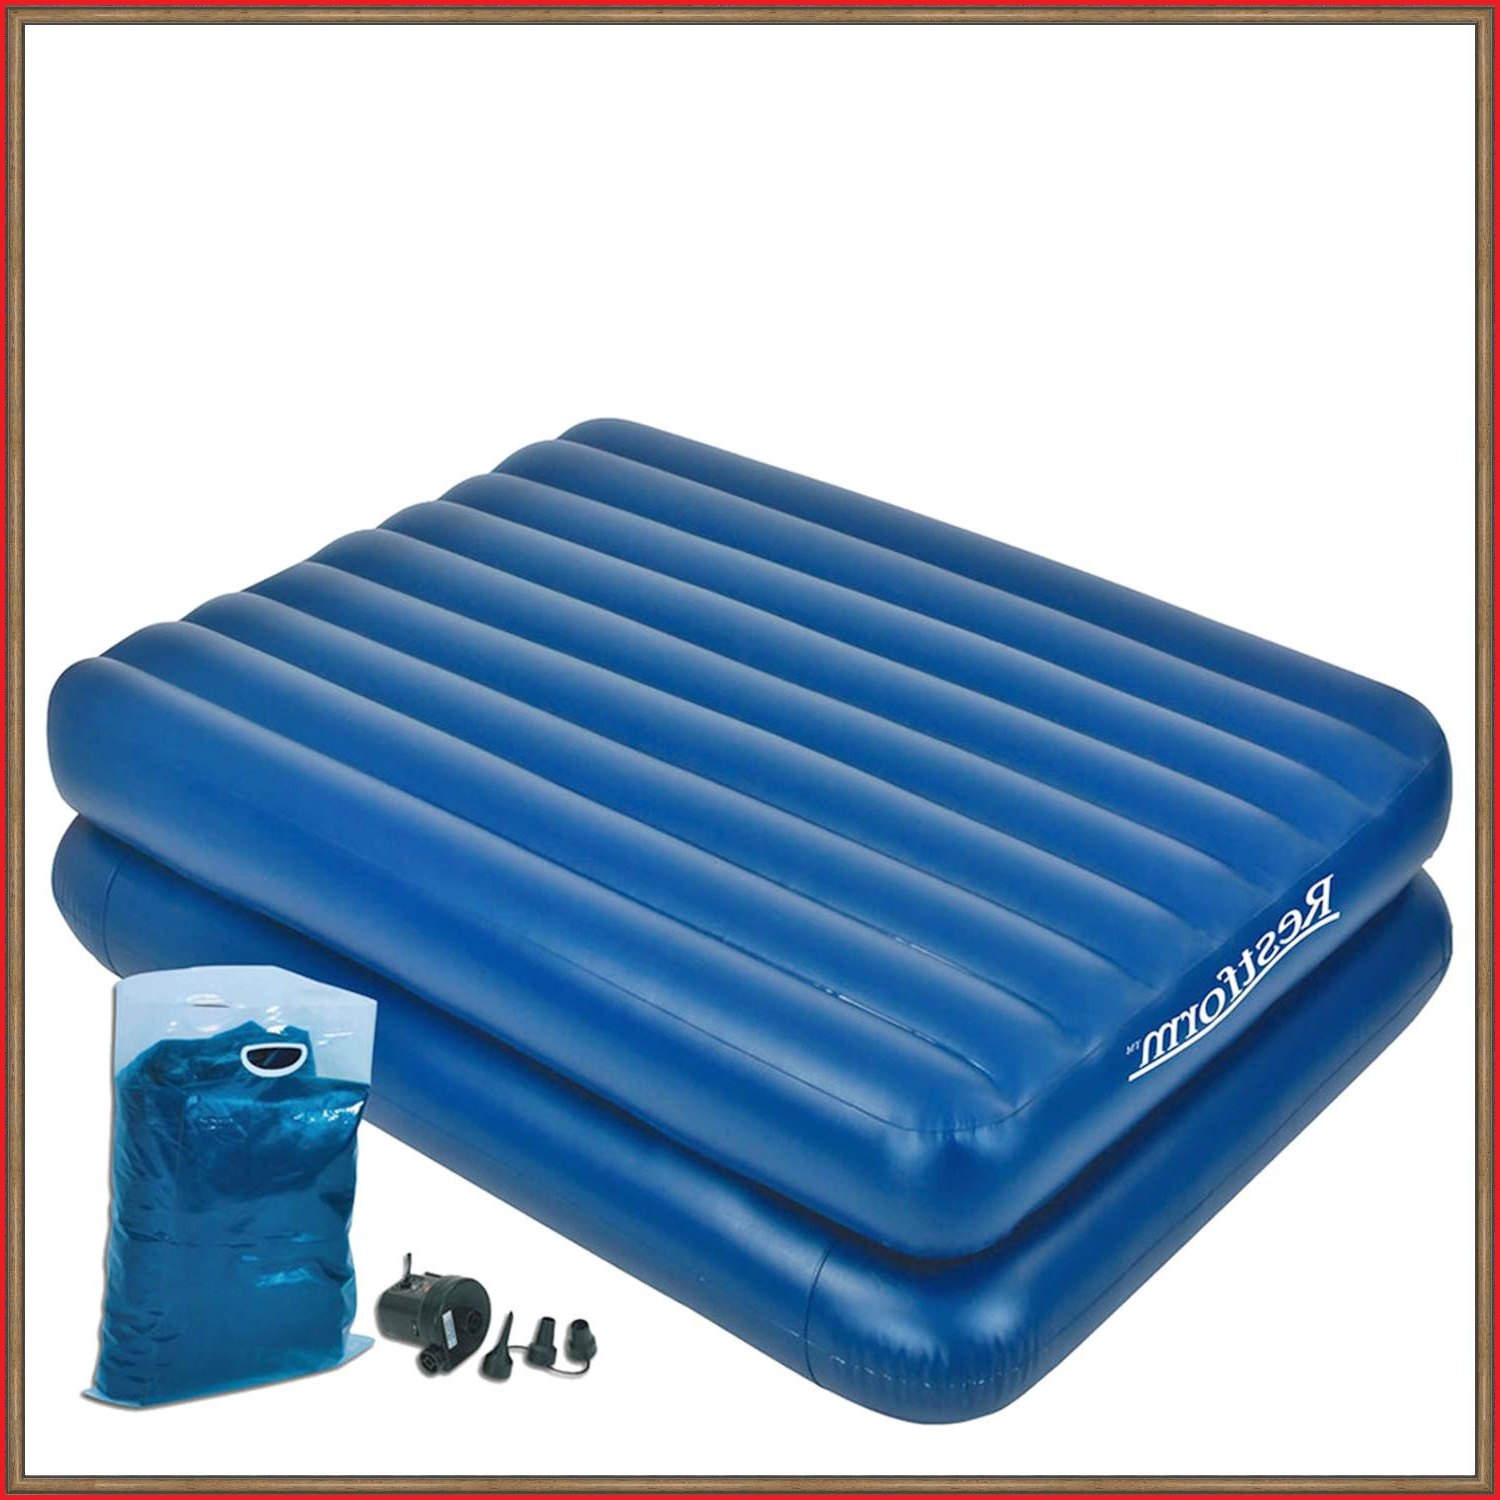 Colchon Inflable Ikea Gdd0 Colchones Inflables Ikea Corte Ingles Colchon Inflable